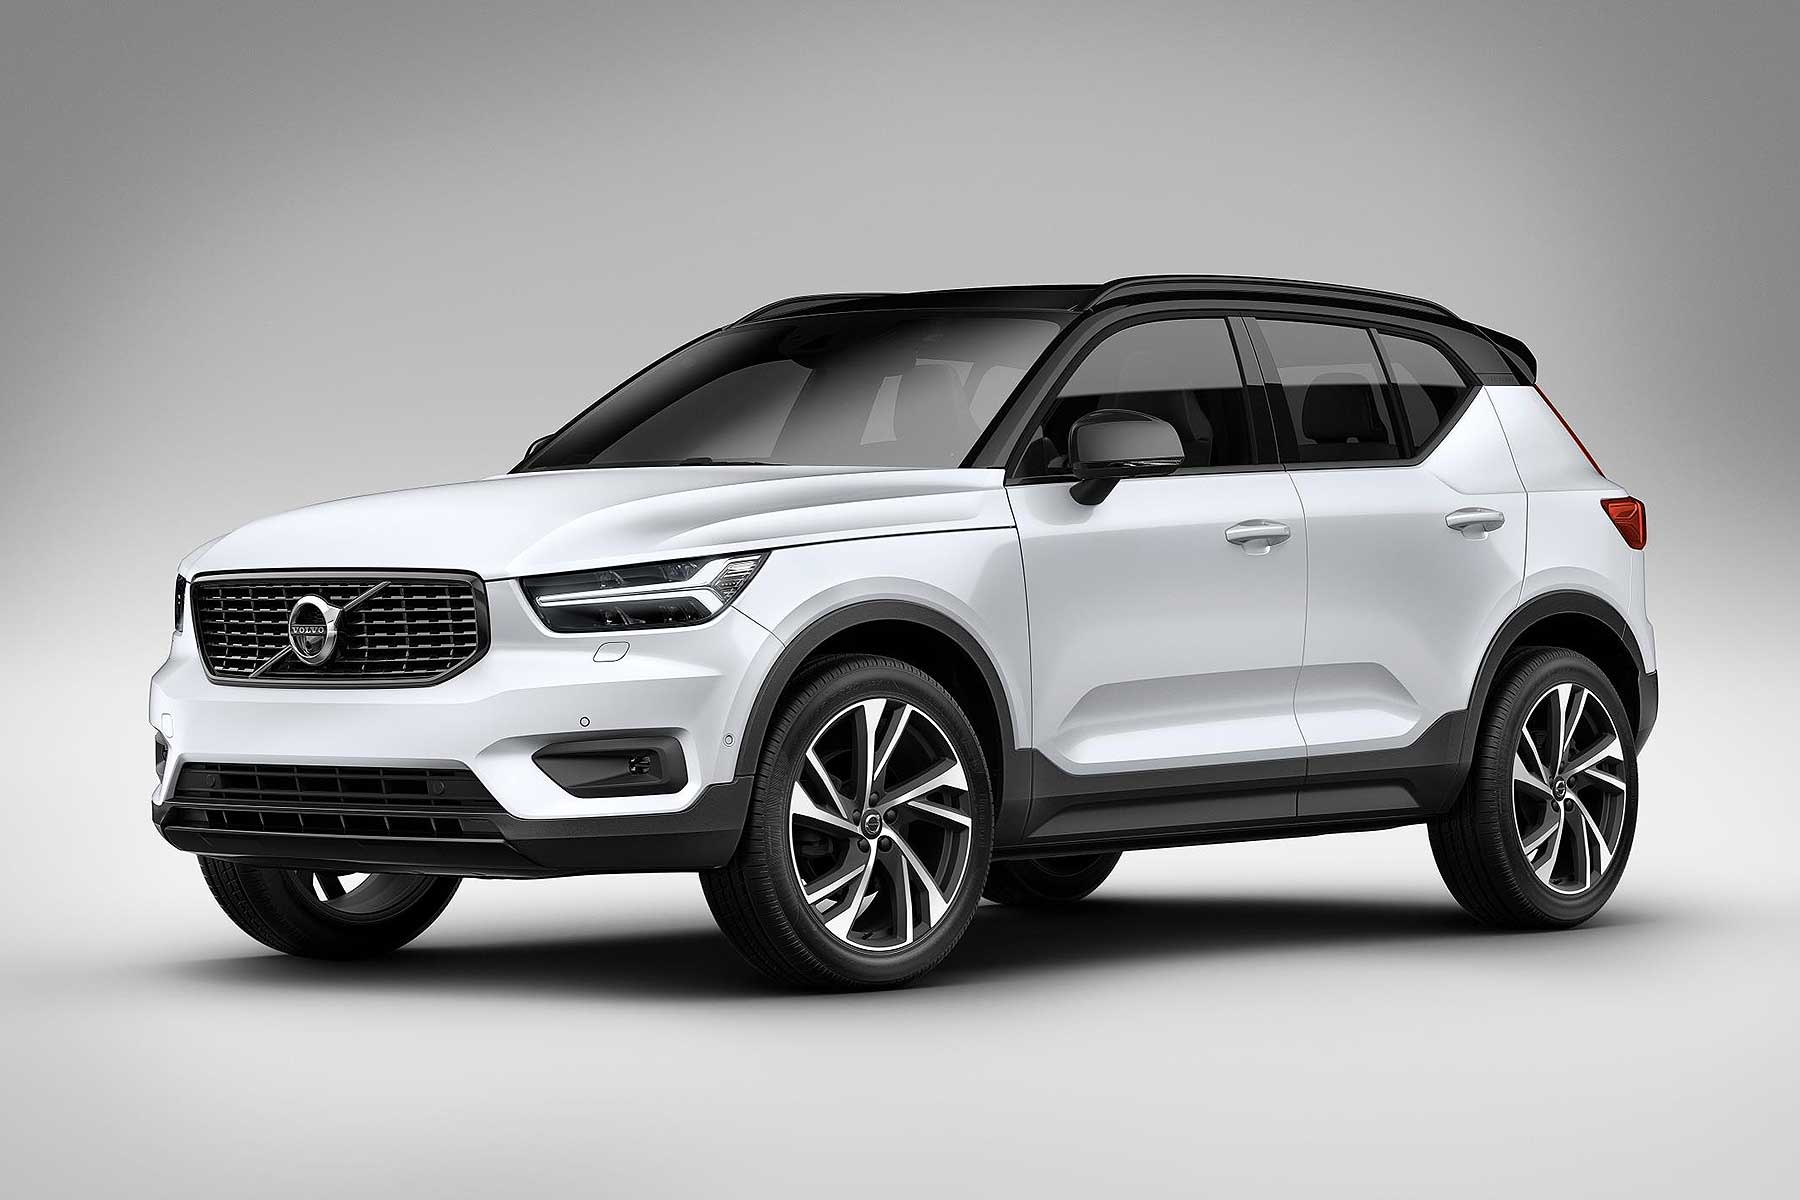 volvo xc40 prices now from 27 610 with launch of new three cylinder t3 petrol motoring research. Black Bedroom Furniture Sets. Home Design Ideas